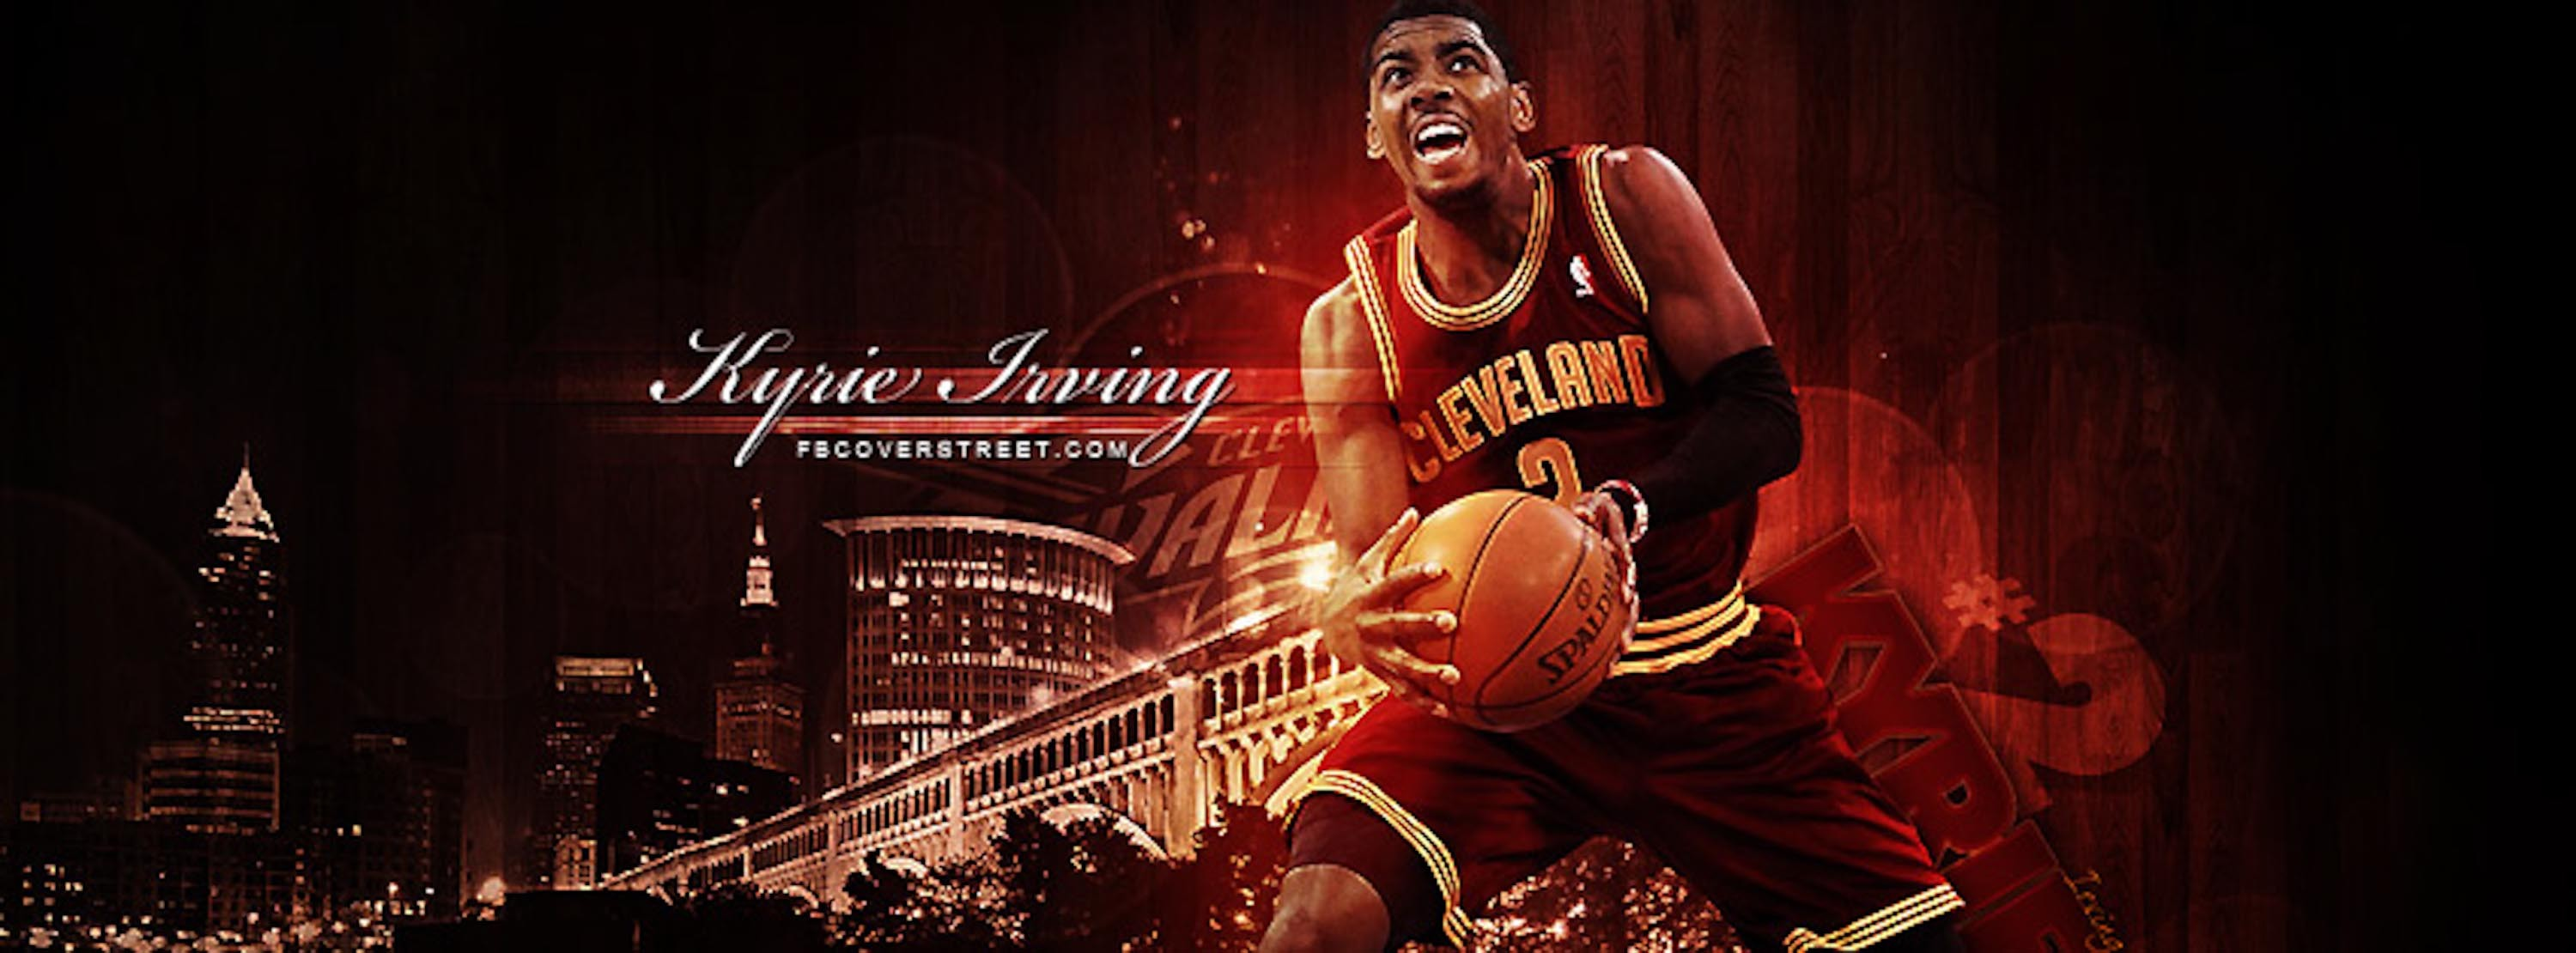 Kyrie Irving wallpaper ·① Download free beautiful High ... Kyrie Irving Wallpaper Download